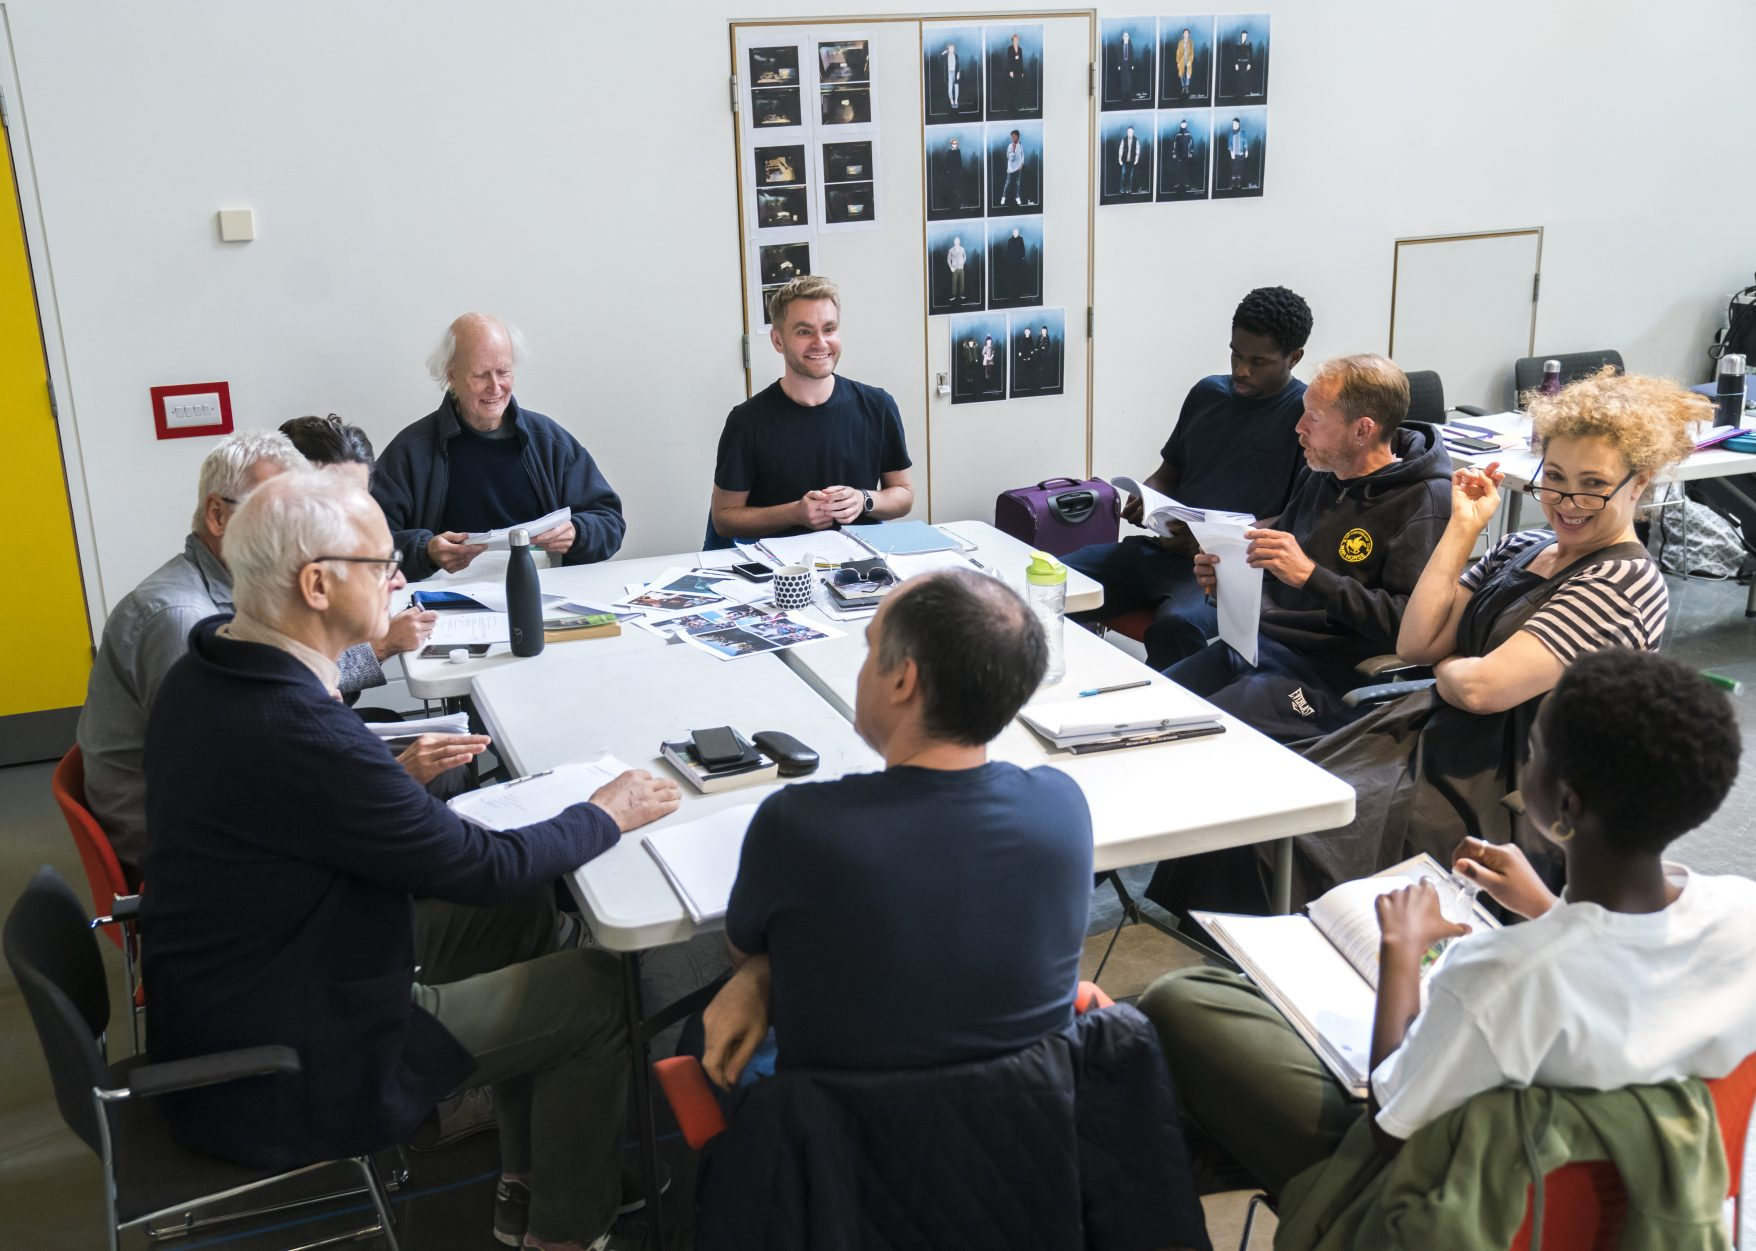 Rehearsals for An Enemy of the People - photography by Tristram Kenton